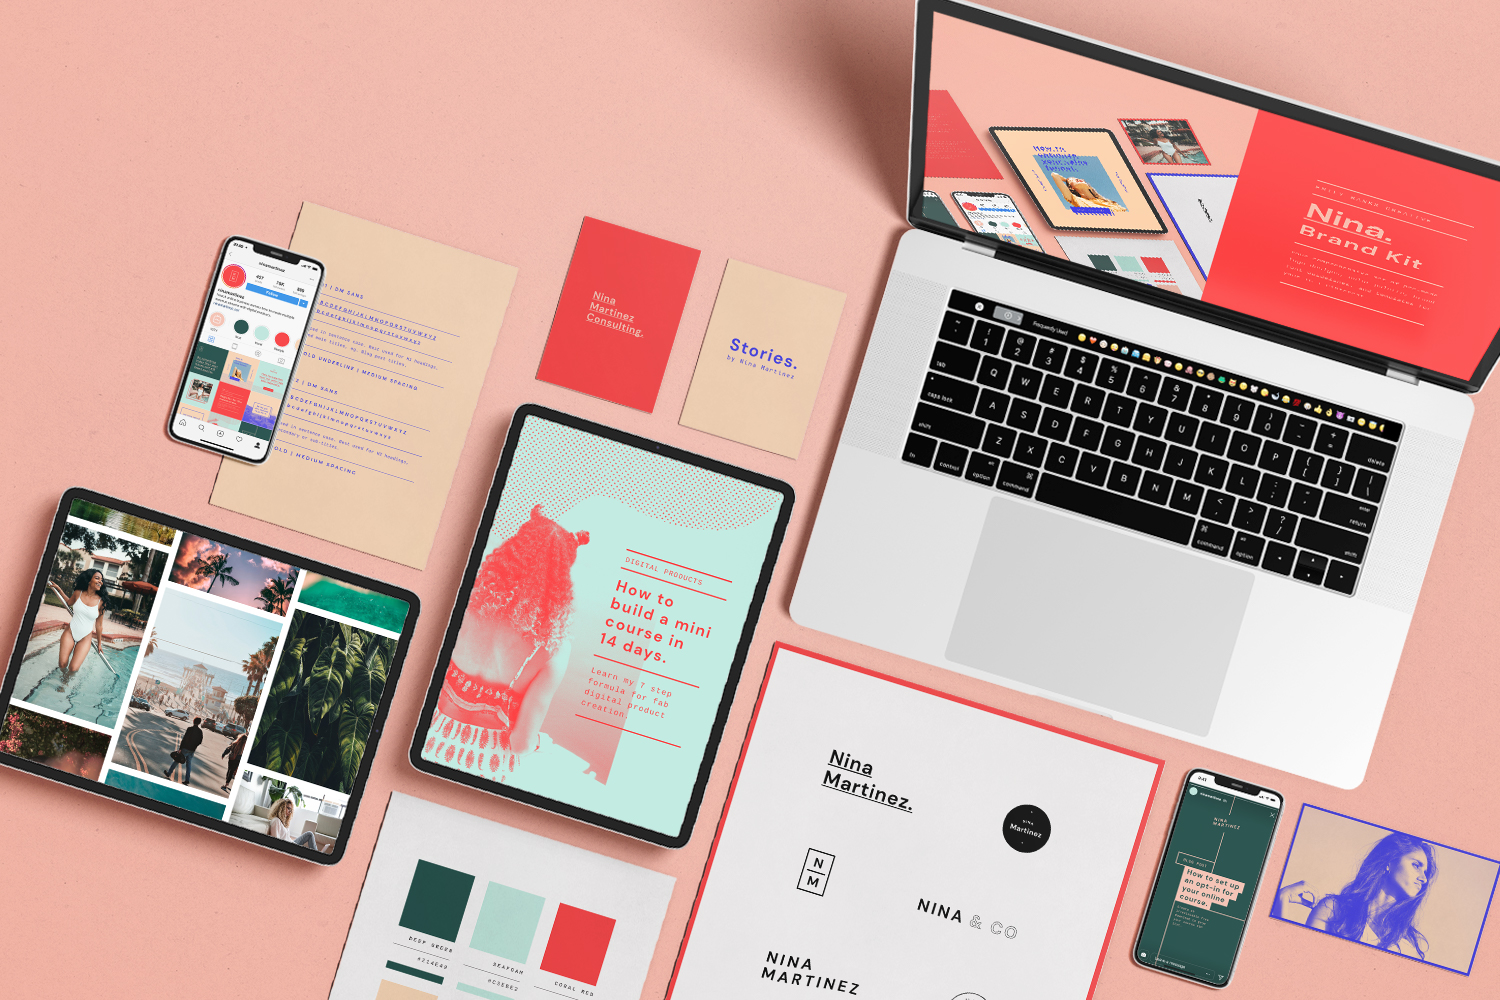 The Nina Kit - Love bright colors and chill vibes? You'll love Nina. She's bold, contemporary, and will help you build an online presence that stands out from the crowd.